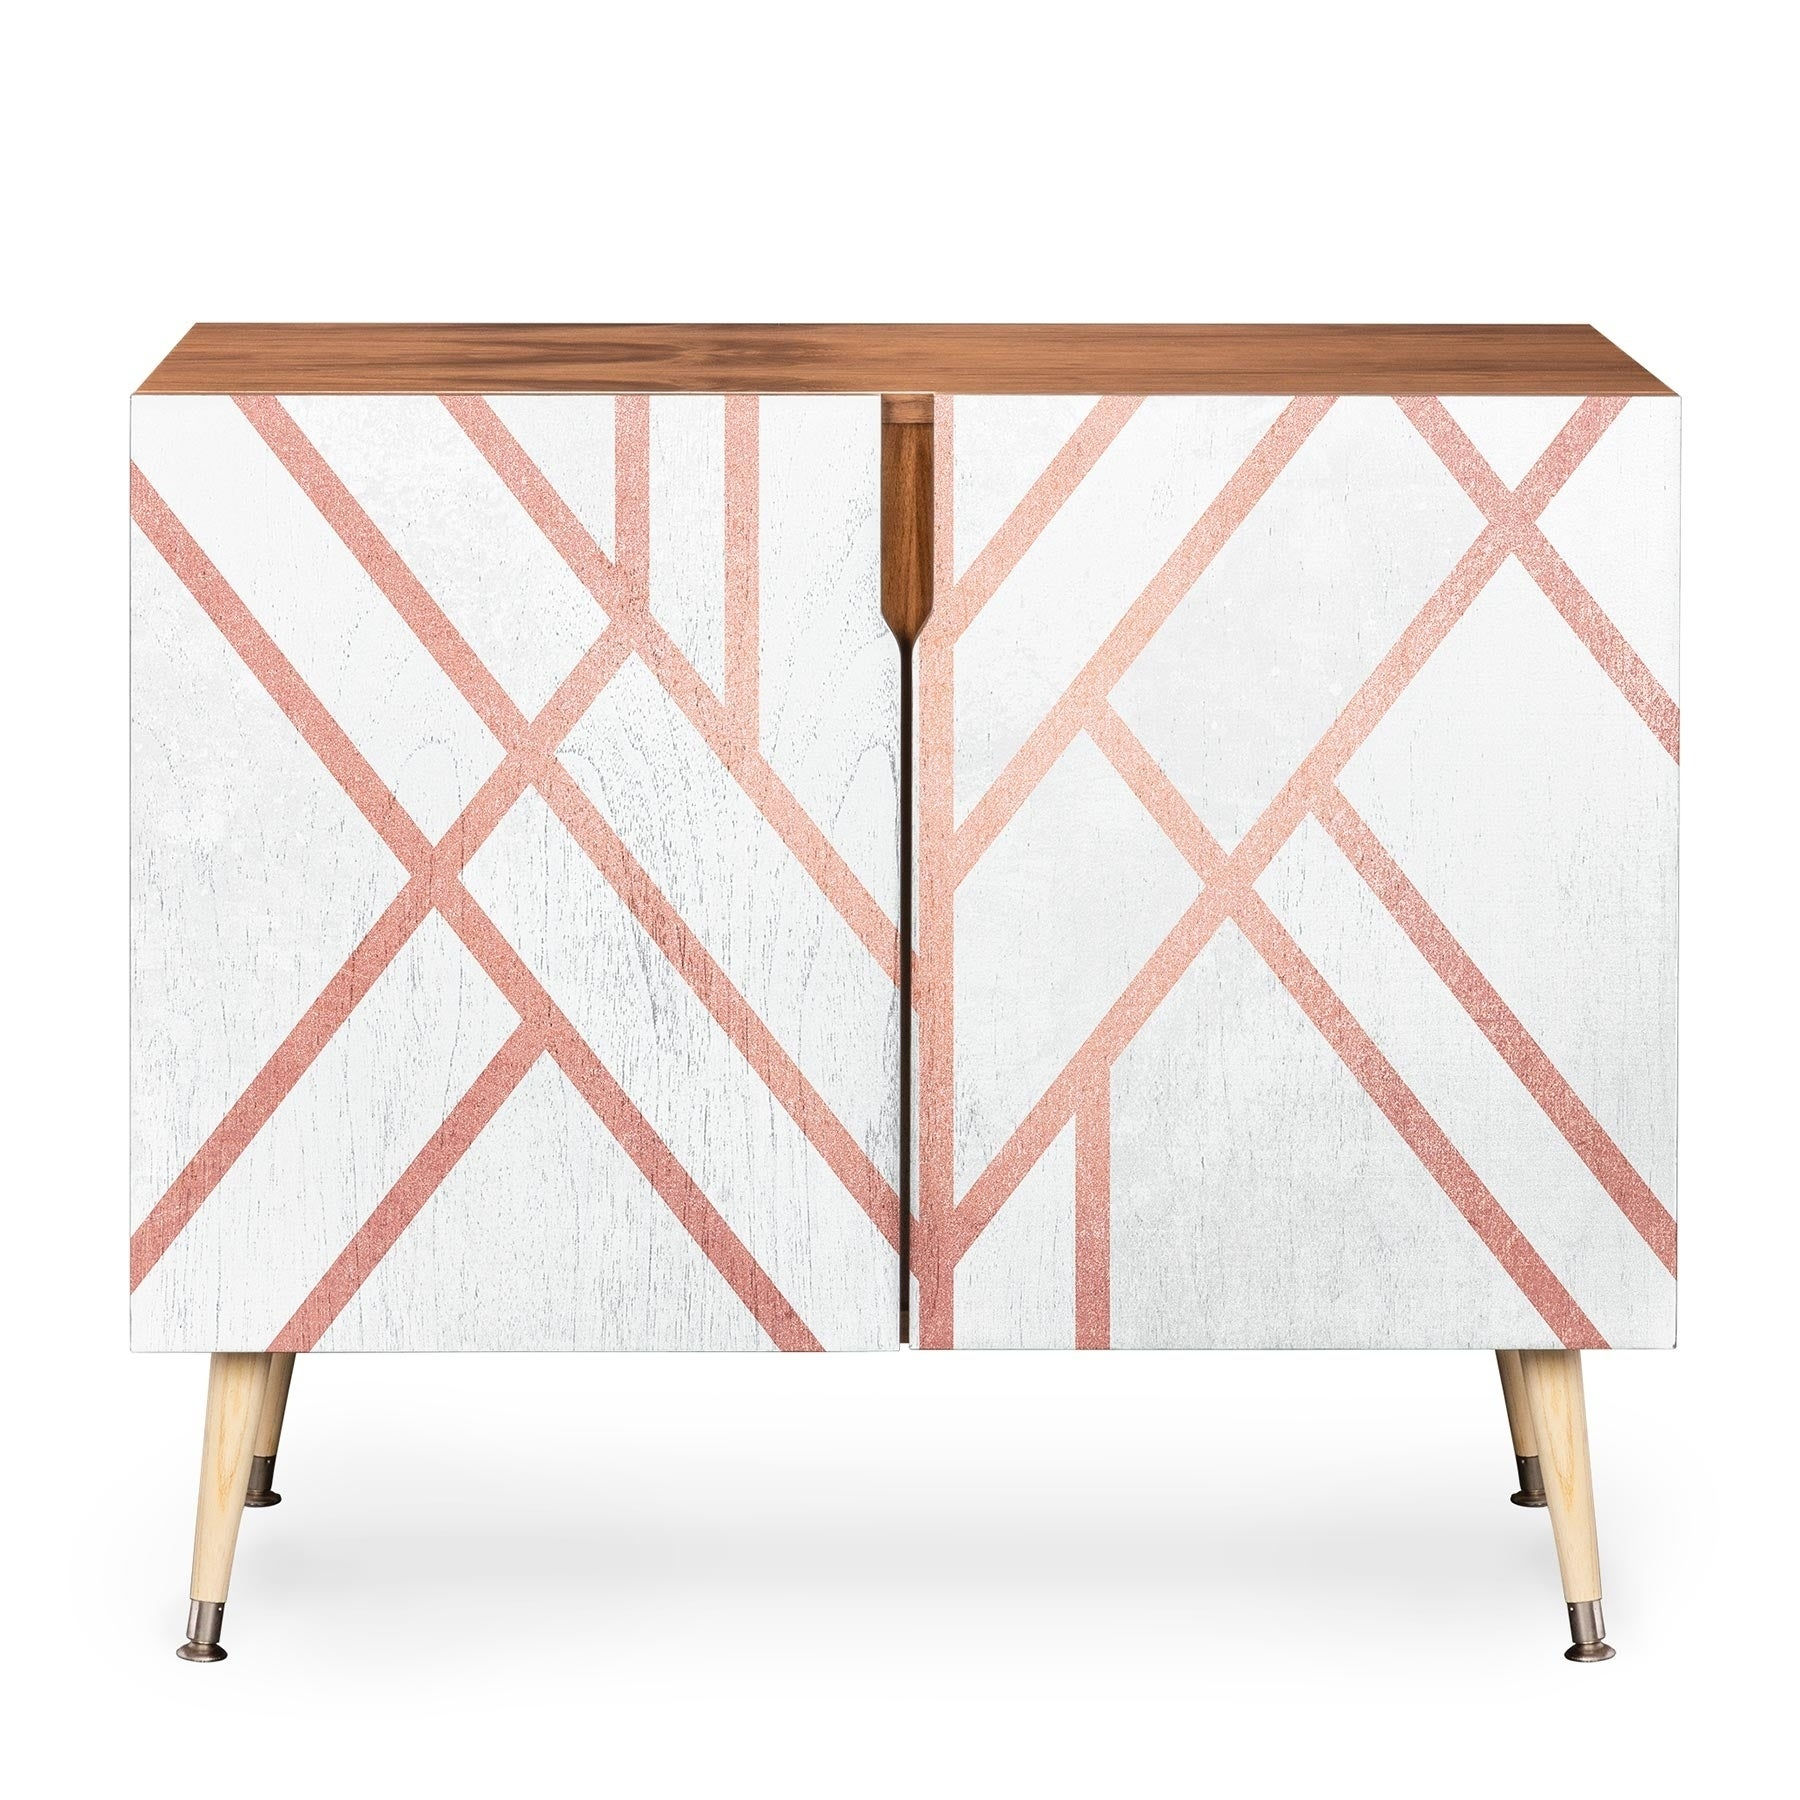 Deny Designs Pink And White Geometric Credenza (birch Or Walnut, 3 Leg Options) With Regard To Wooden Deconstruction Credenzas (View 14 of 30)